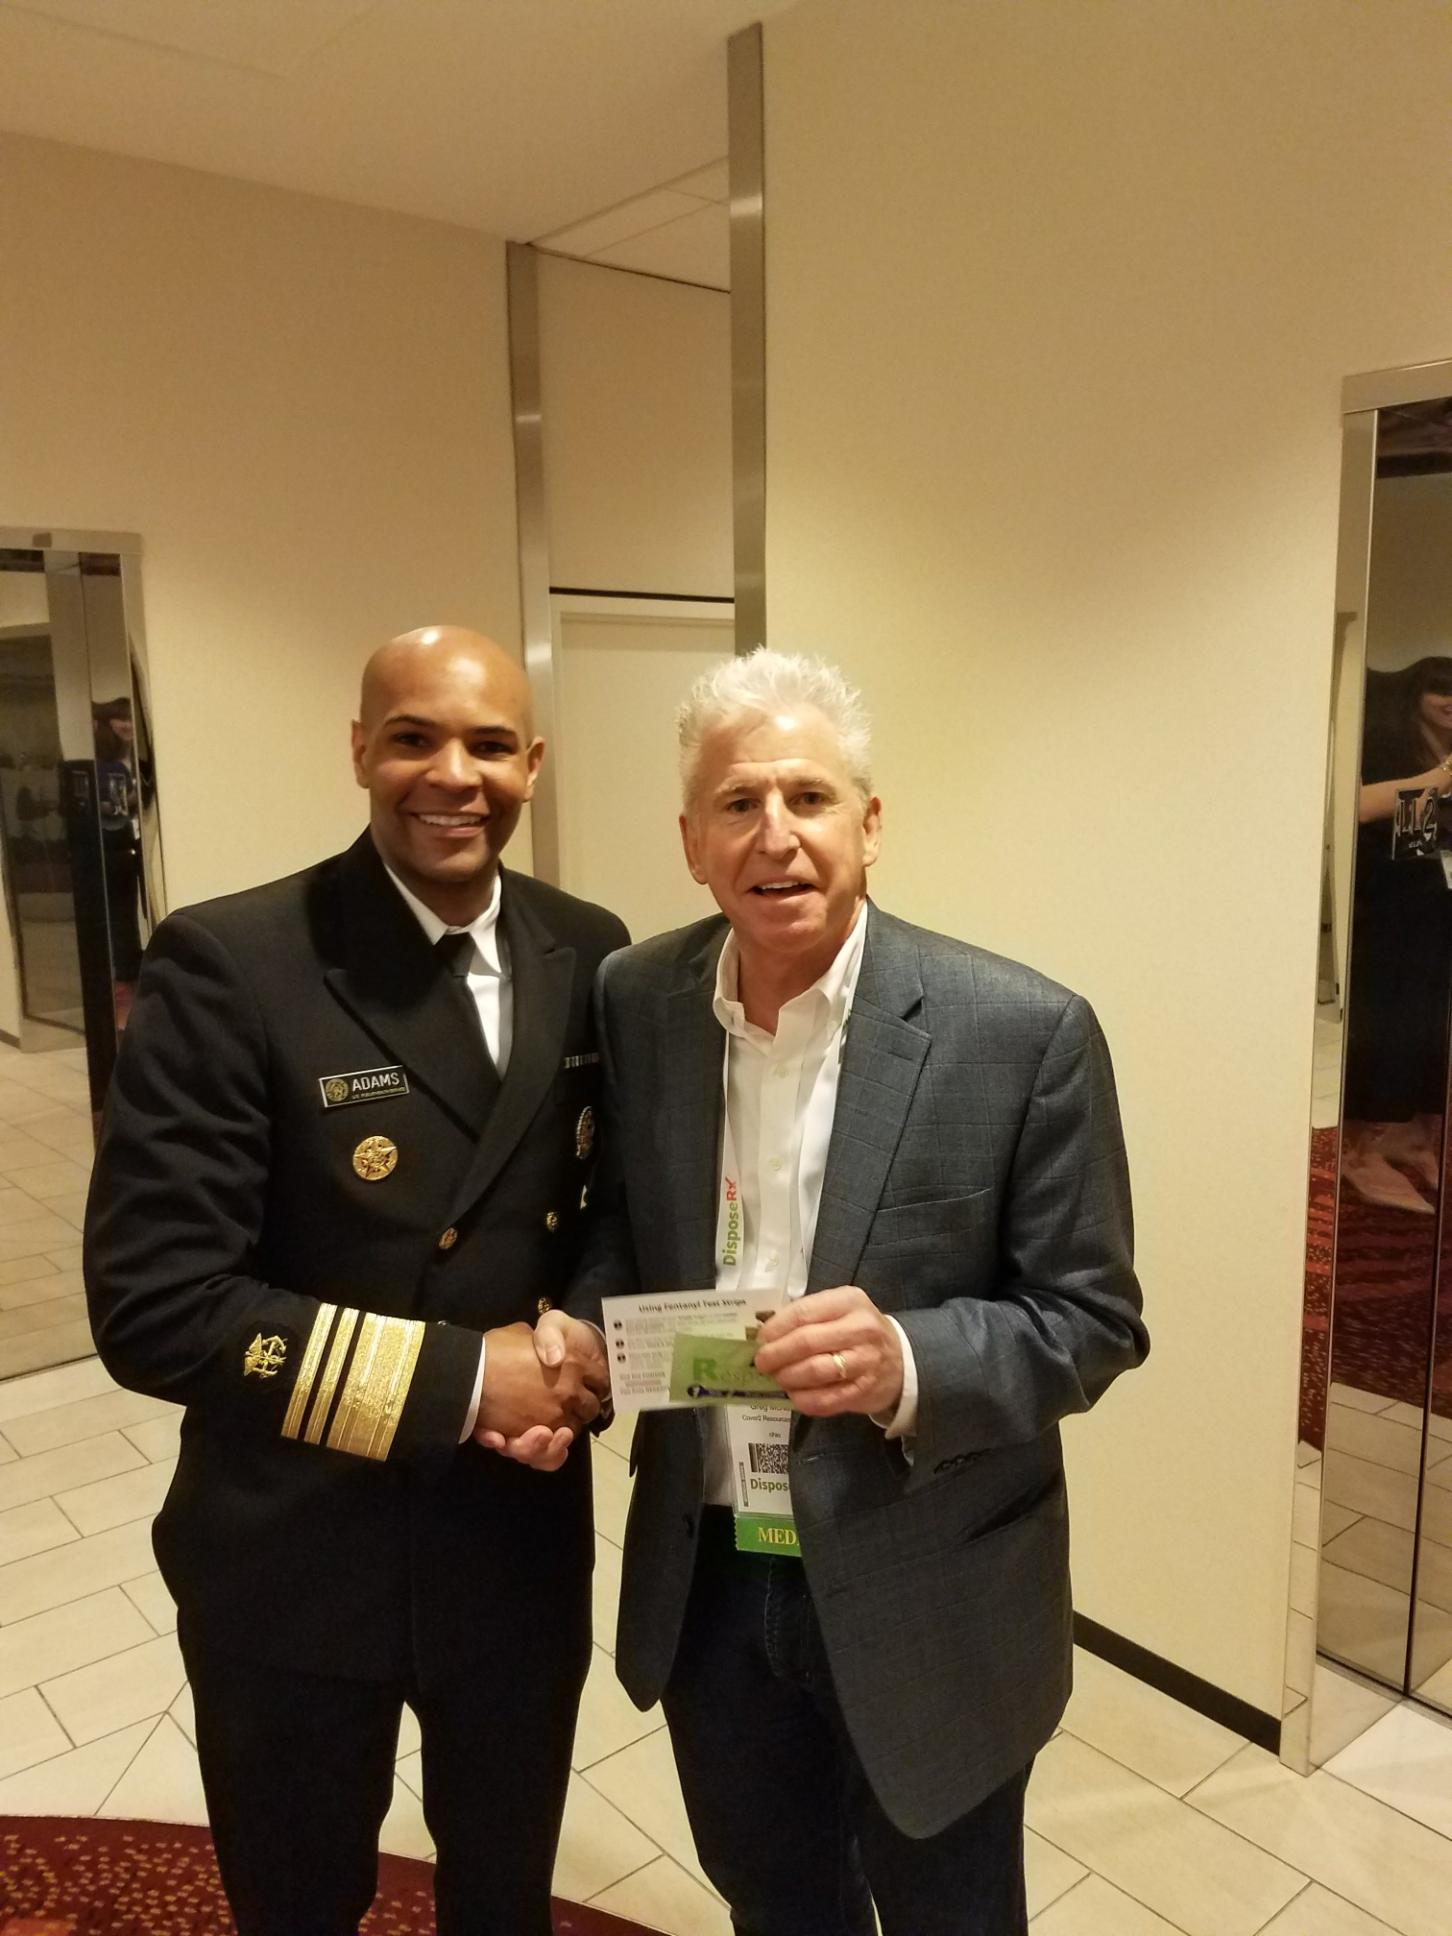 Surgeon General and Greg at Rx Summit 2018